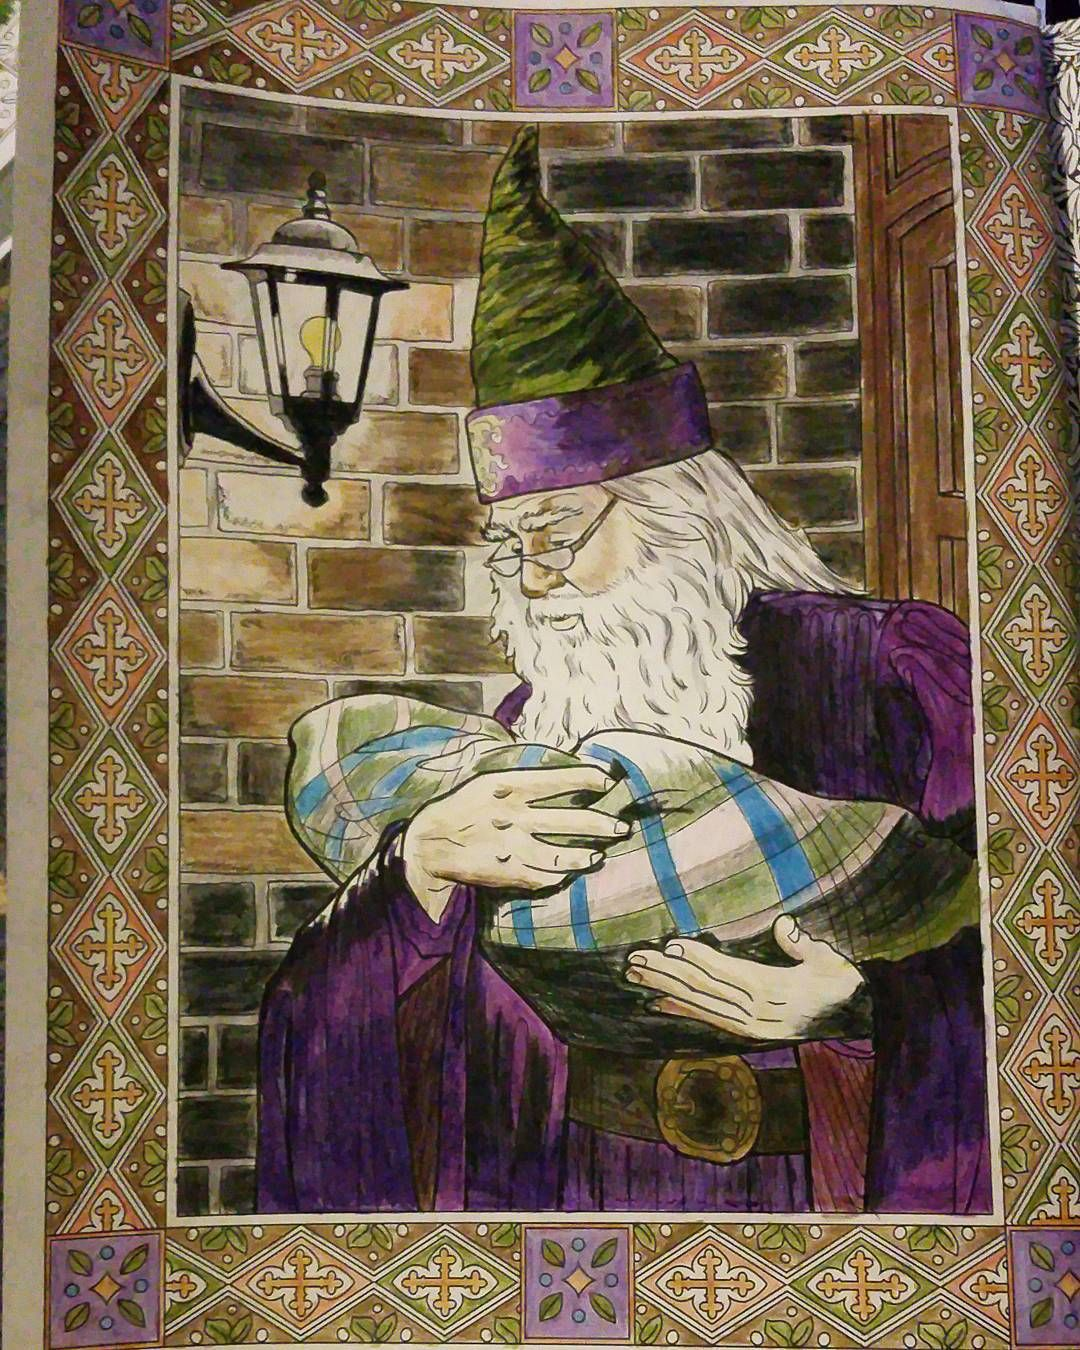 Colouring Coloring Books Adult Book Art Harry Potter Fan Mischief Managed Pencil Fandom